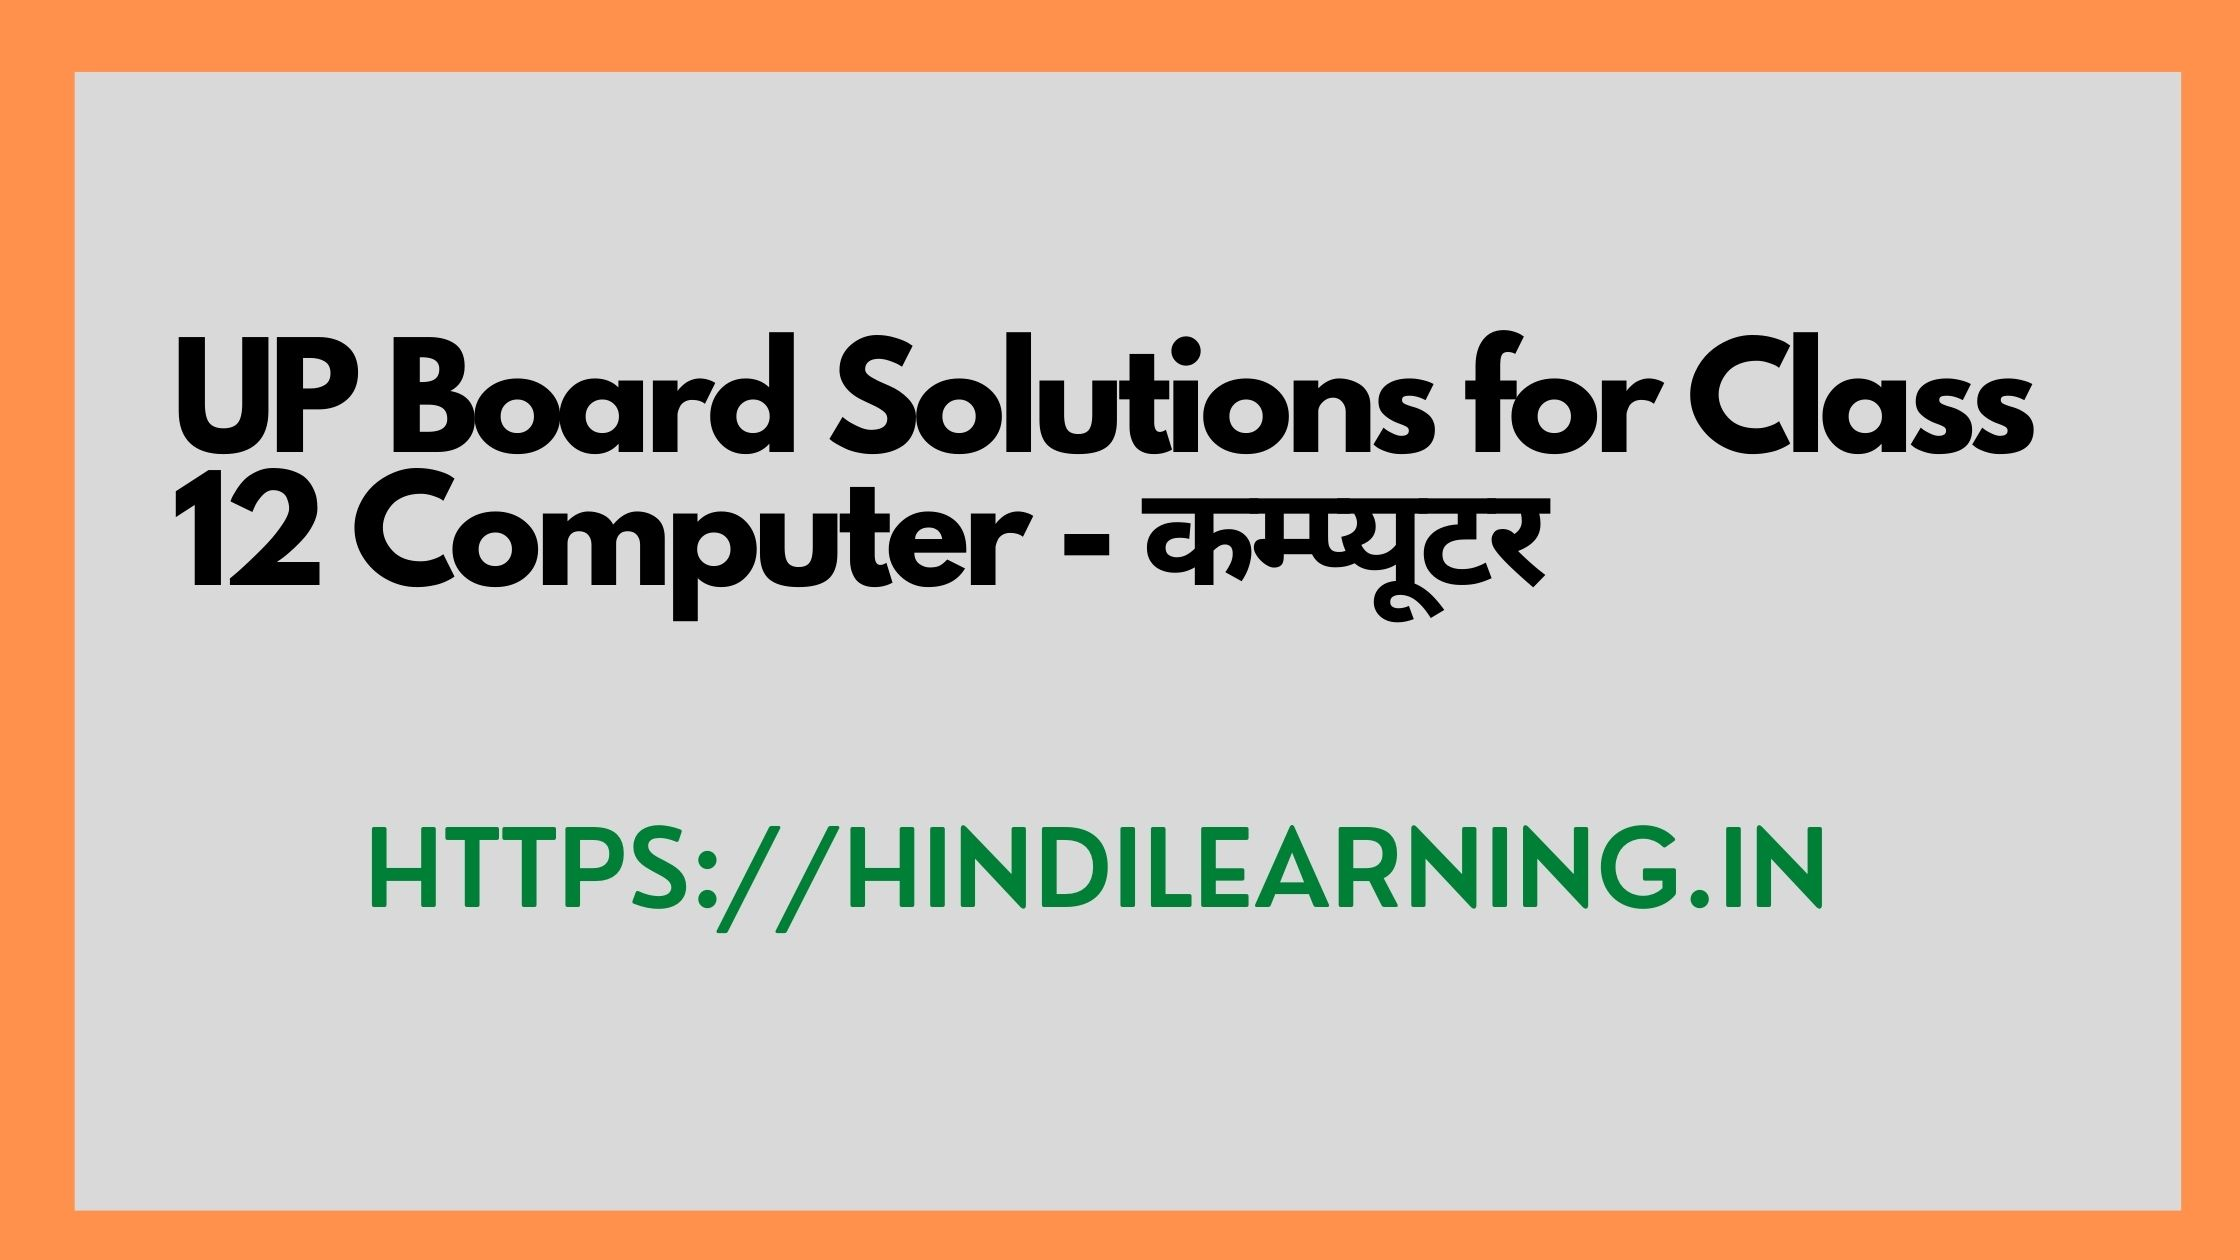 UP Board Solutions for Class 12 Computer in Hindi कम्प्यूटर